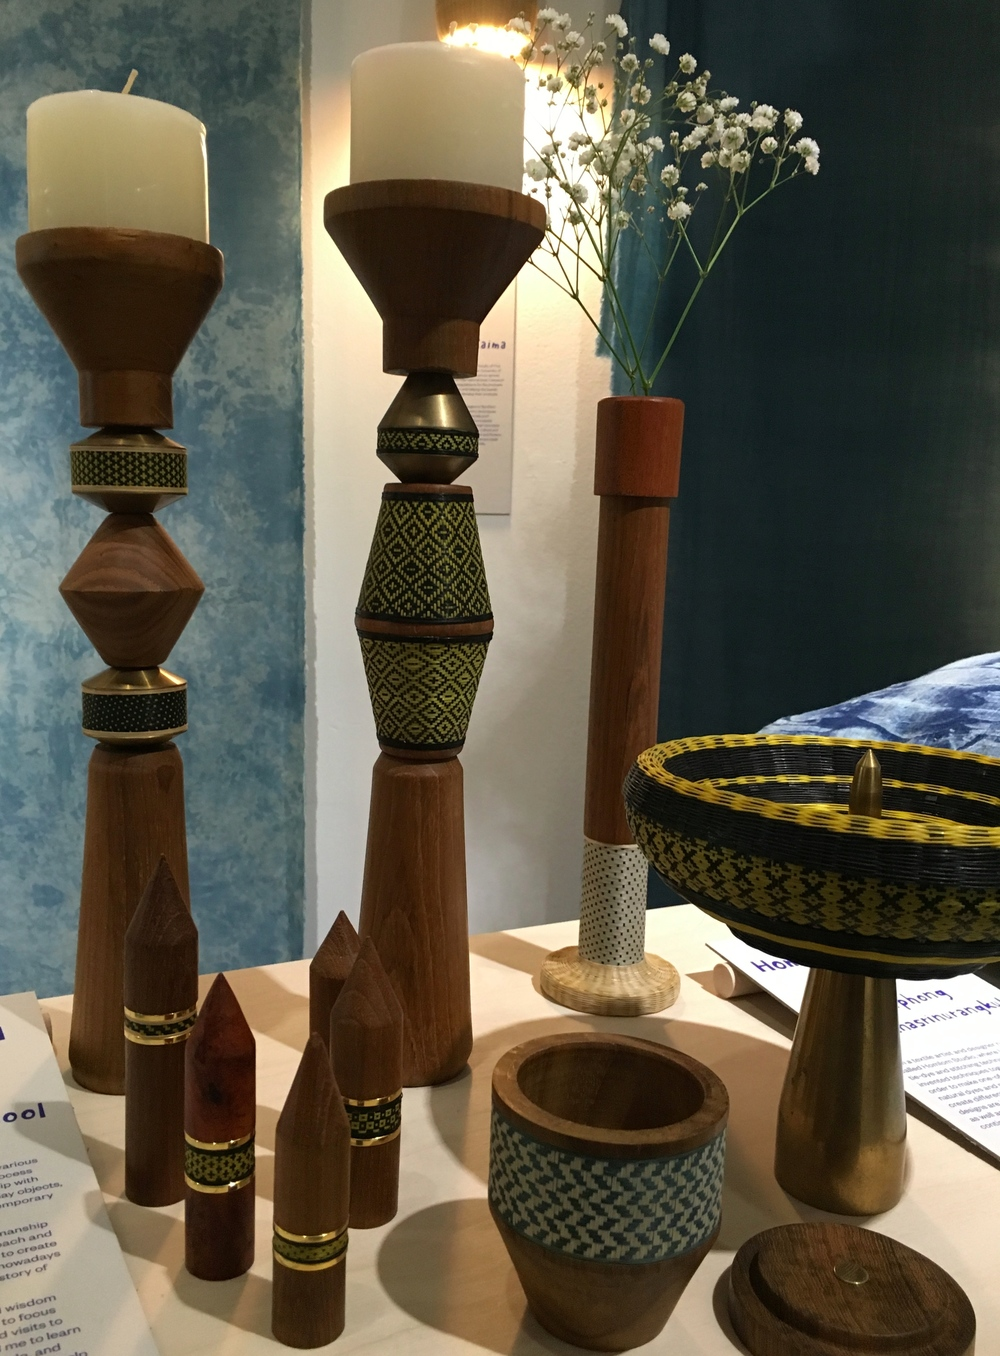 Pillar Candlesticks, rings and vessels from Thai designer-makers Patapian.  Combining Thai wicker weaving techniques with other local craft skills.